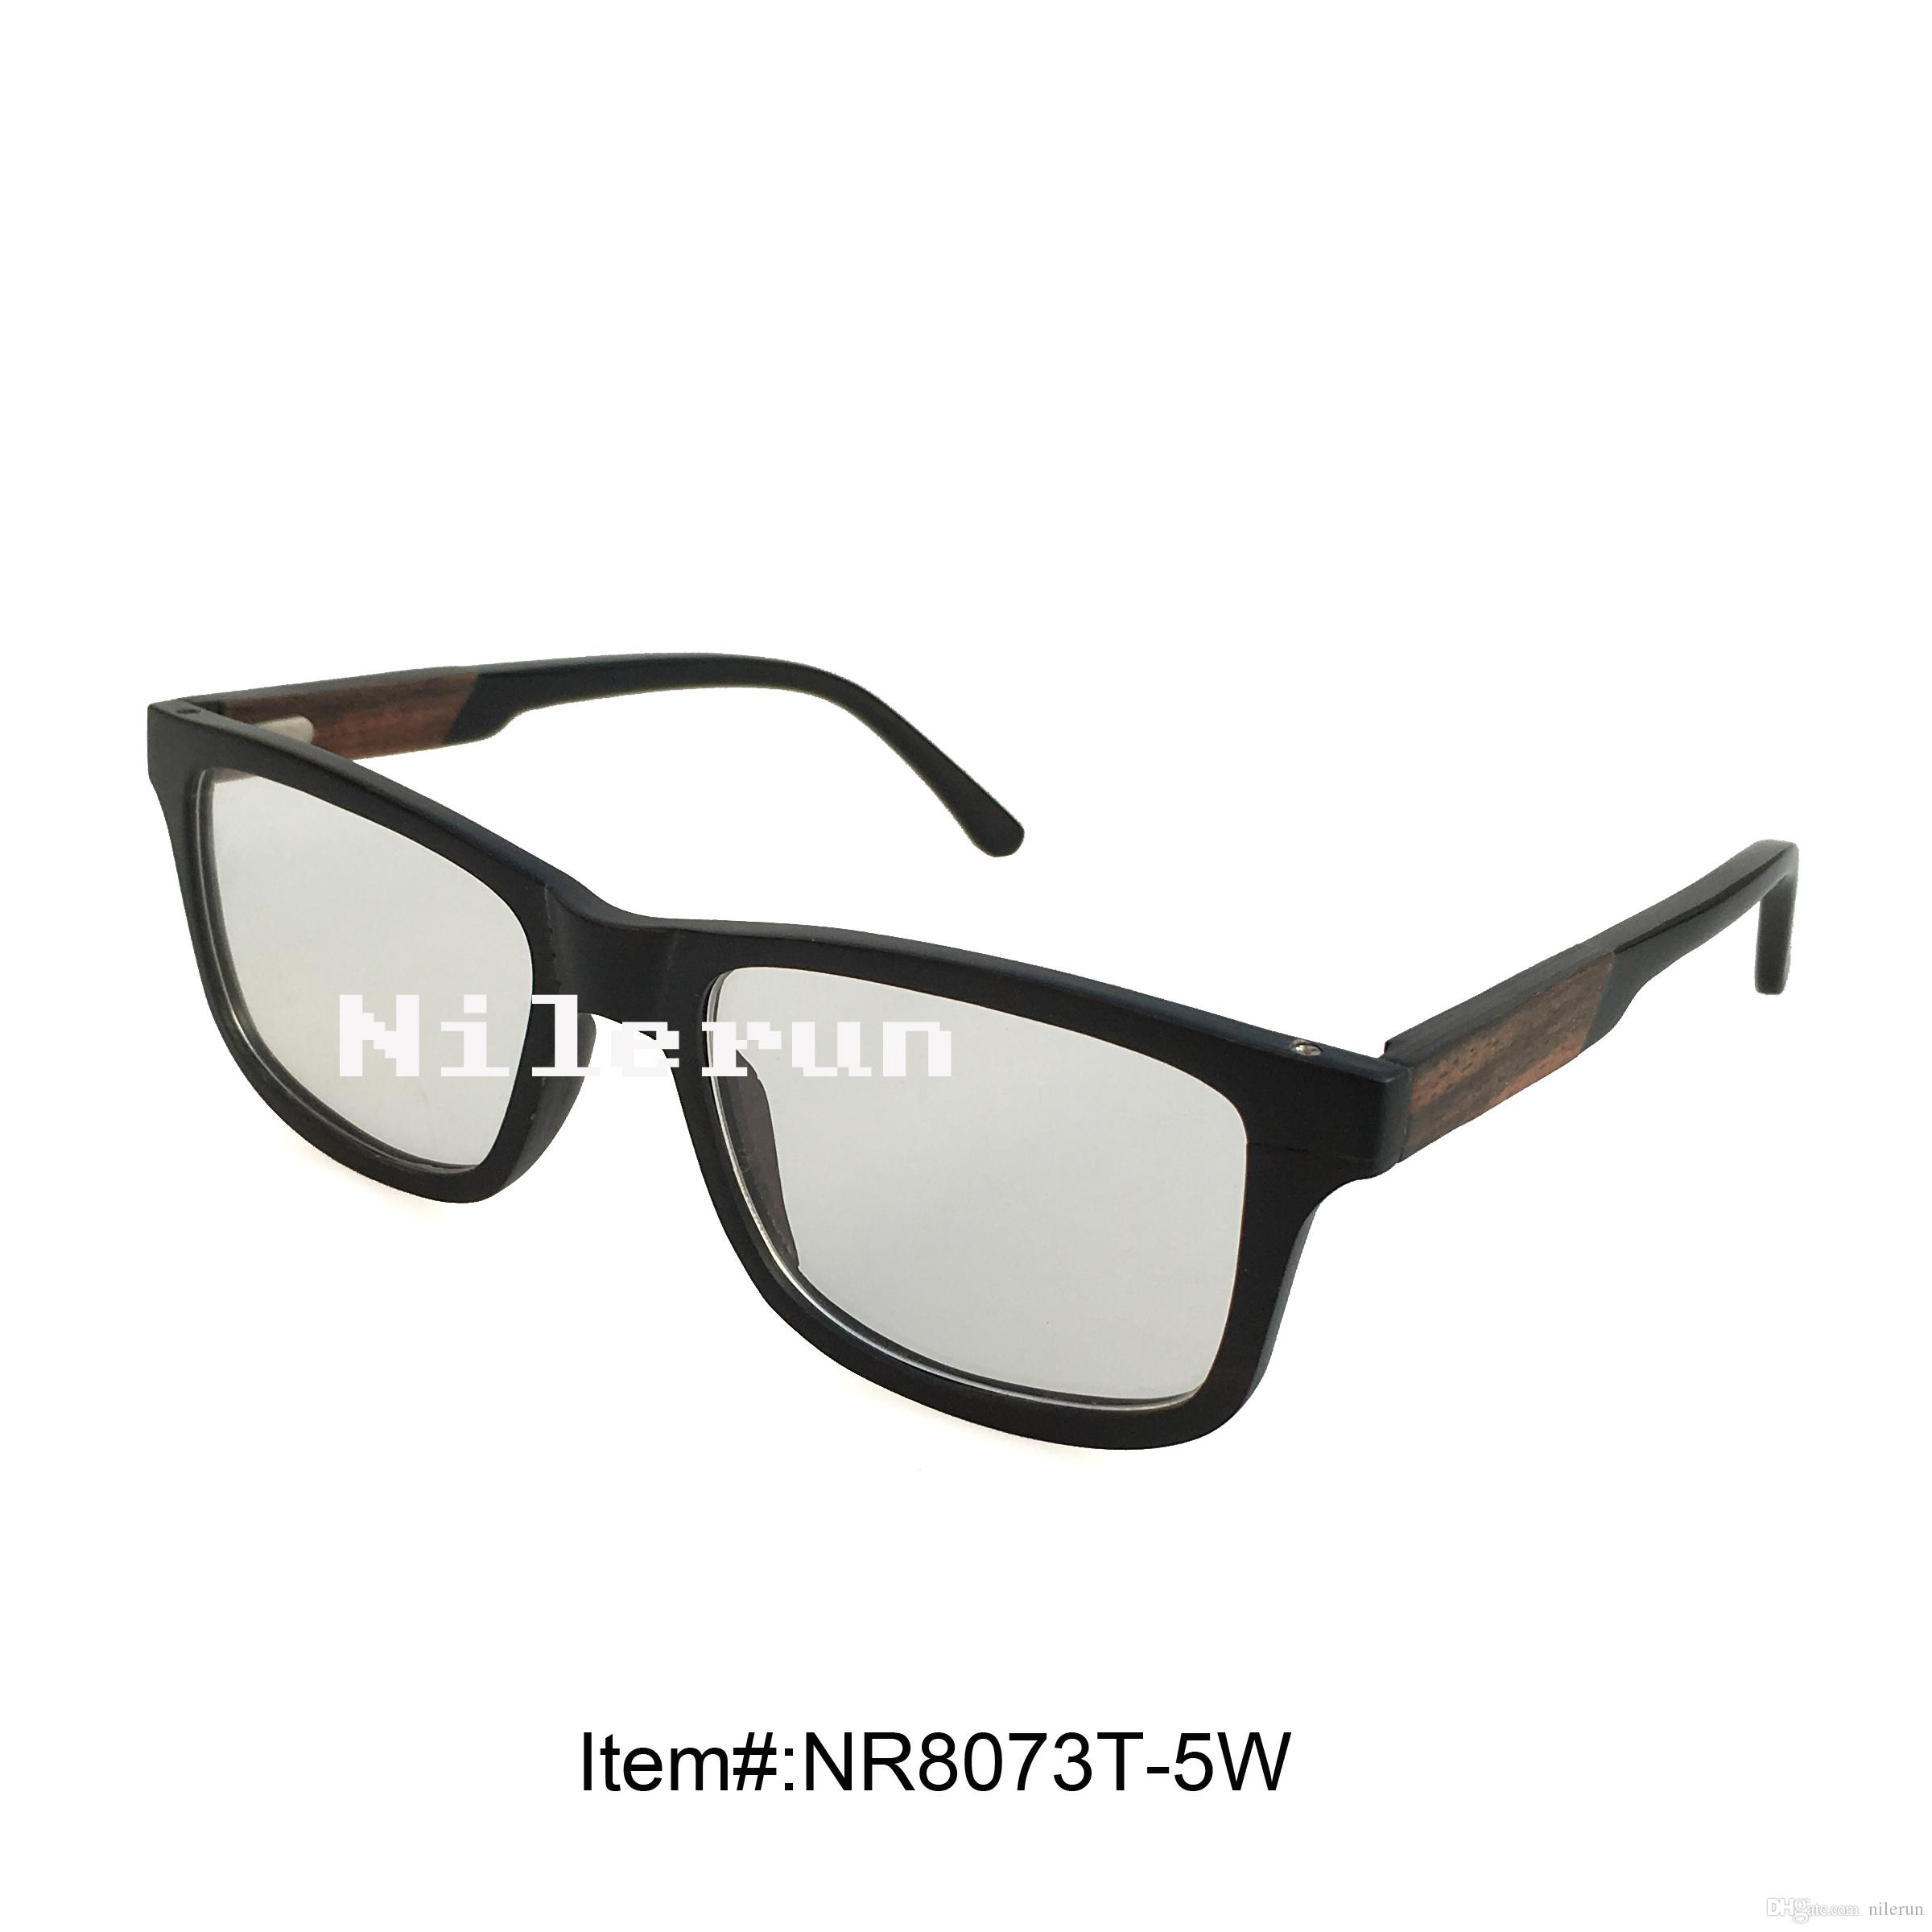 8fe771fc7f Luxury Ebony Wood Optical Spectacles with Acetate Temple Tips And Opening  Cut Wooden Optical Glasses Ebony Wood Spectacles Wood Spectacles Online  with ...